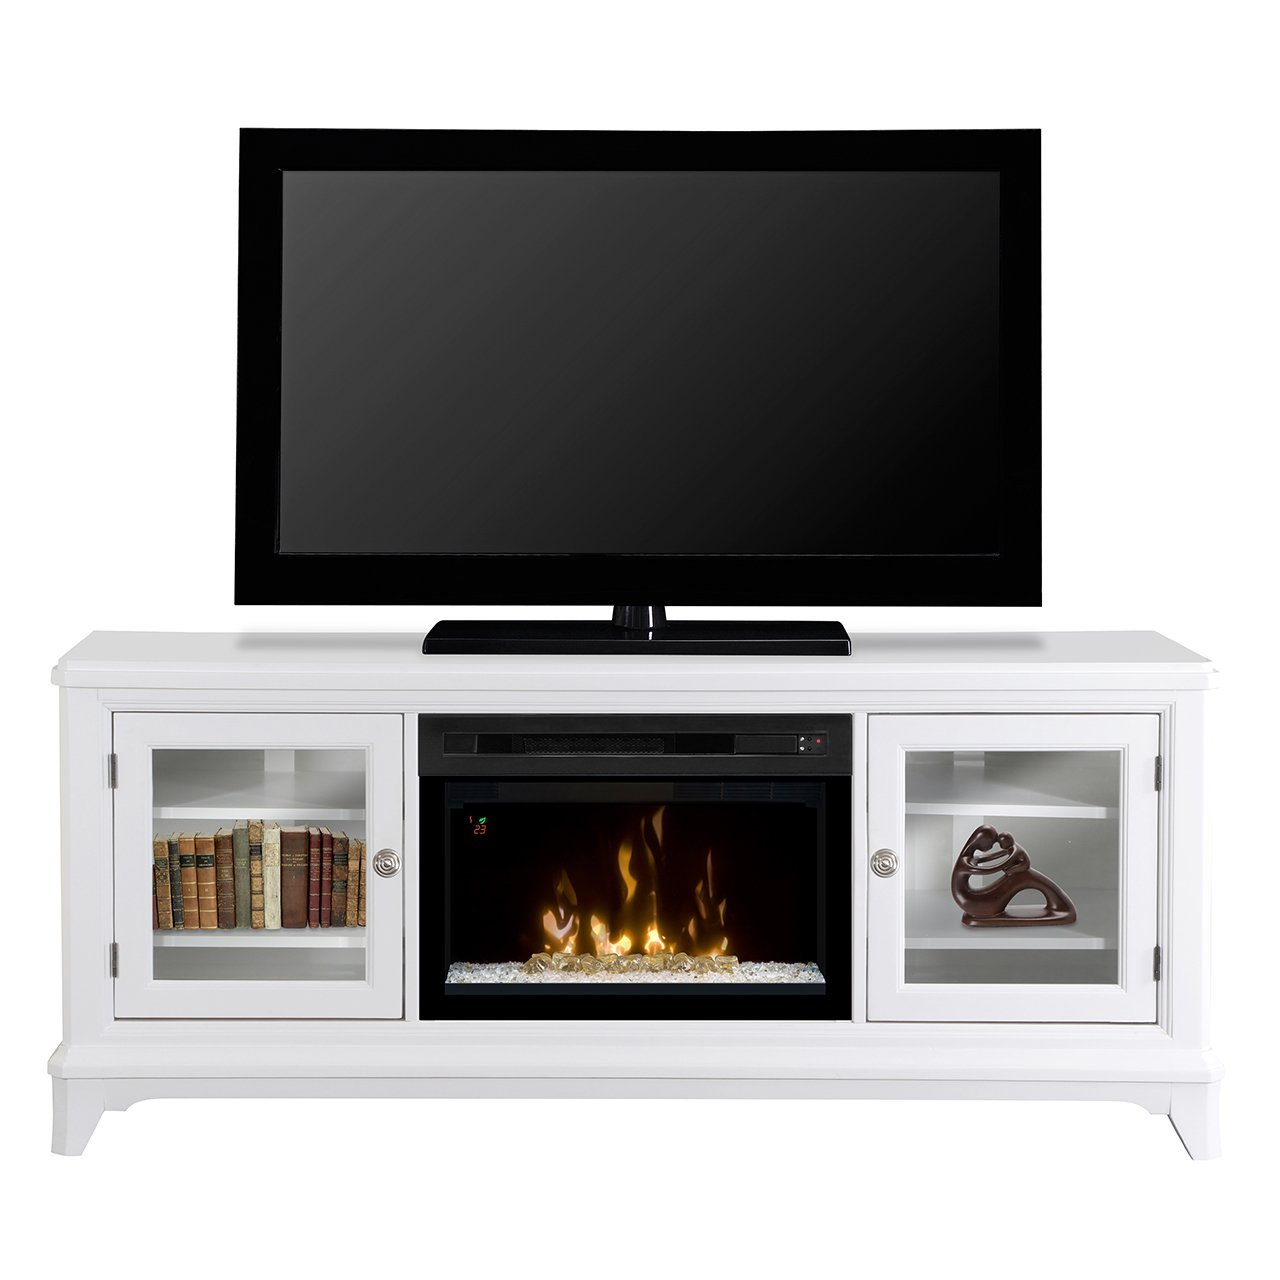 white glass ember bed media console fireplace gds25gd 1413ww